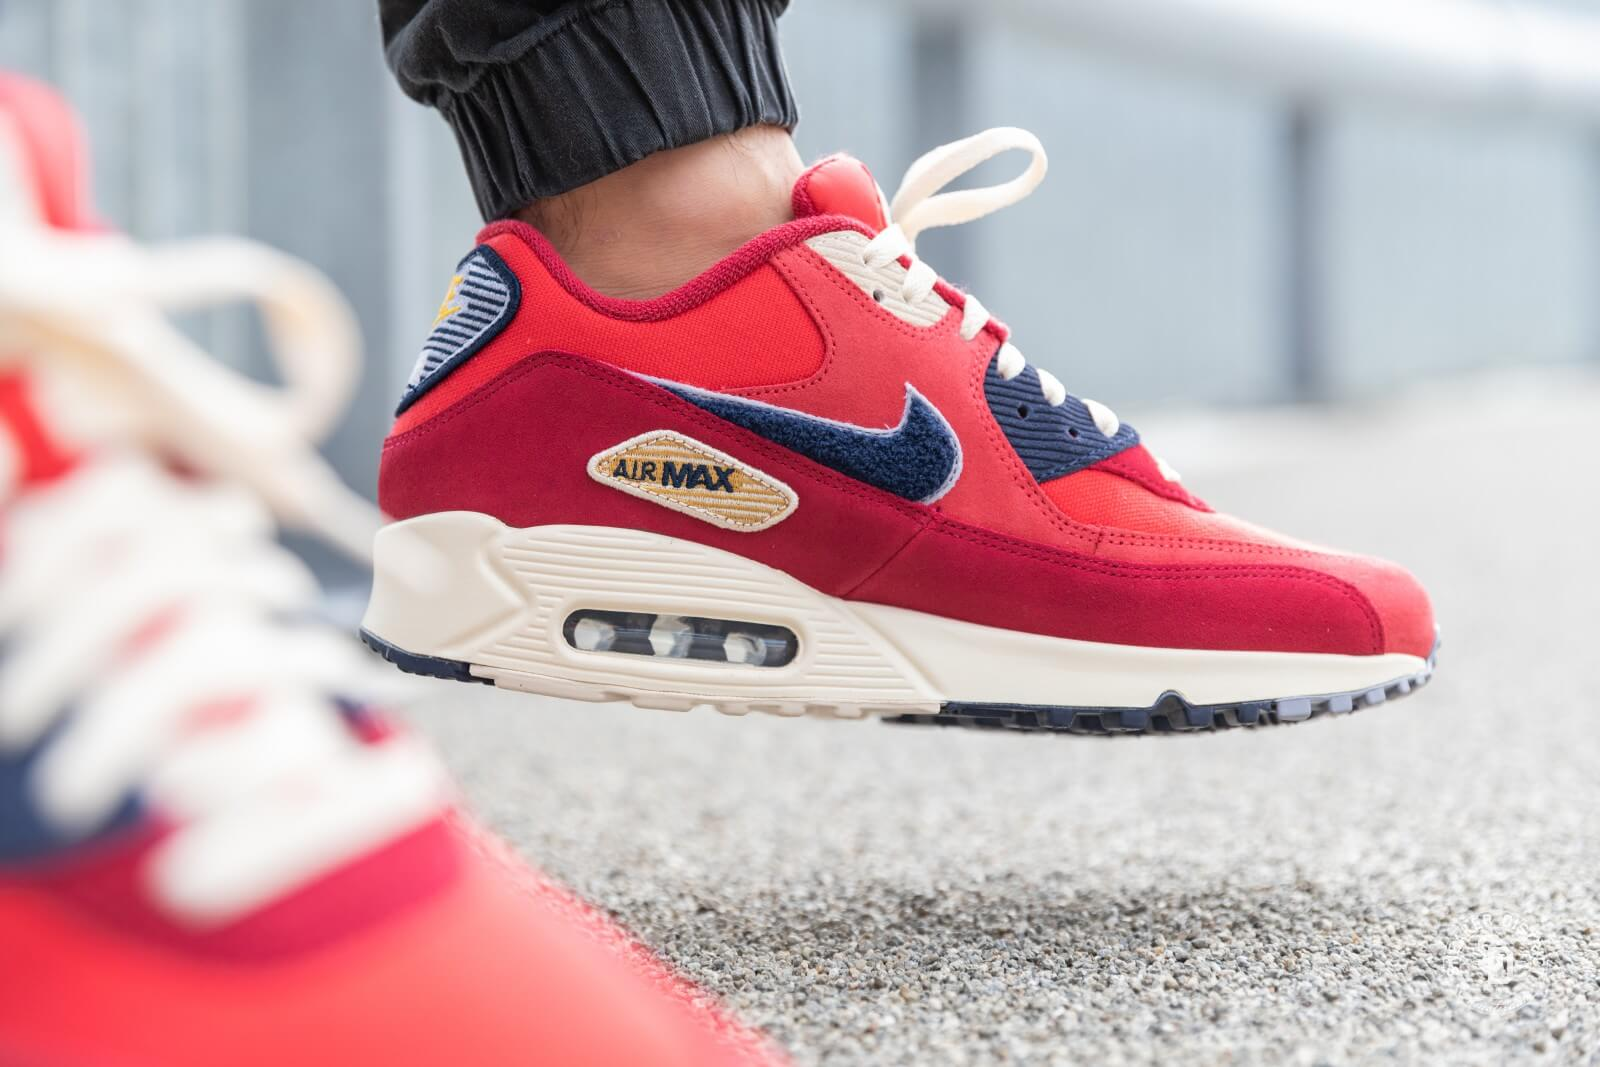 Nike Air Max 90 Premium SE University Red/Provence Purple - 858954-600